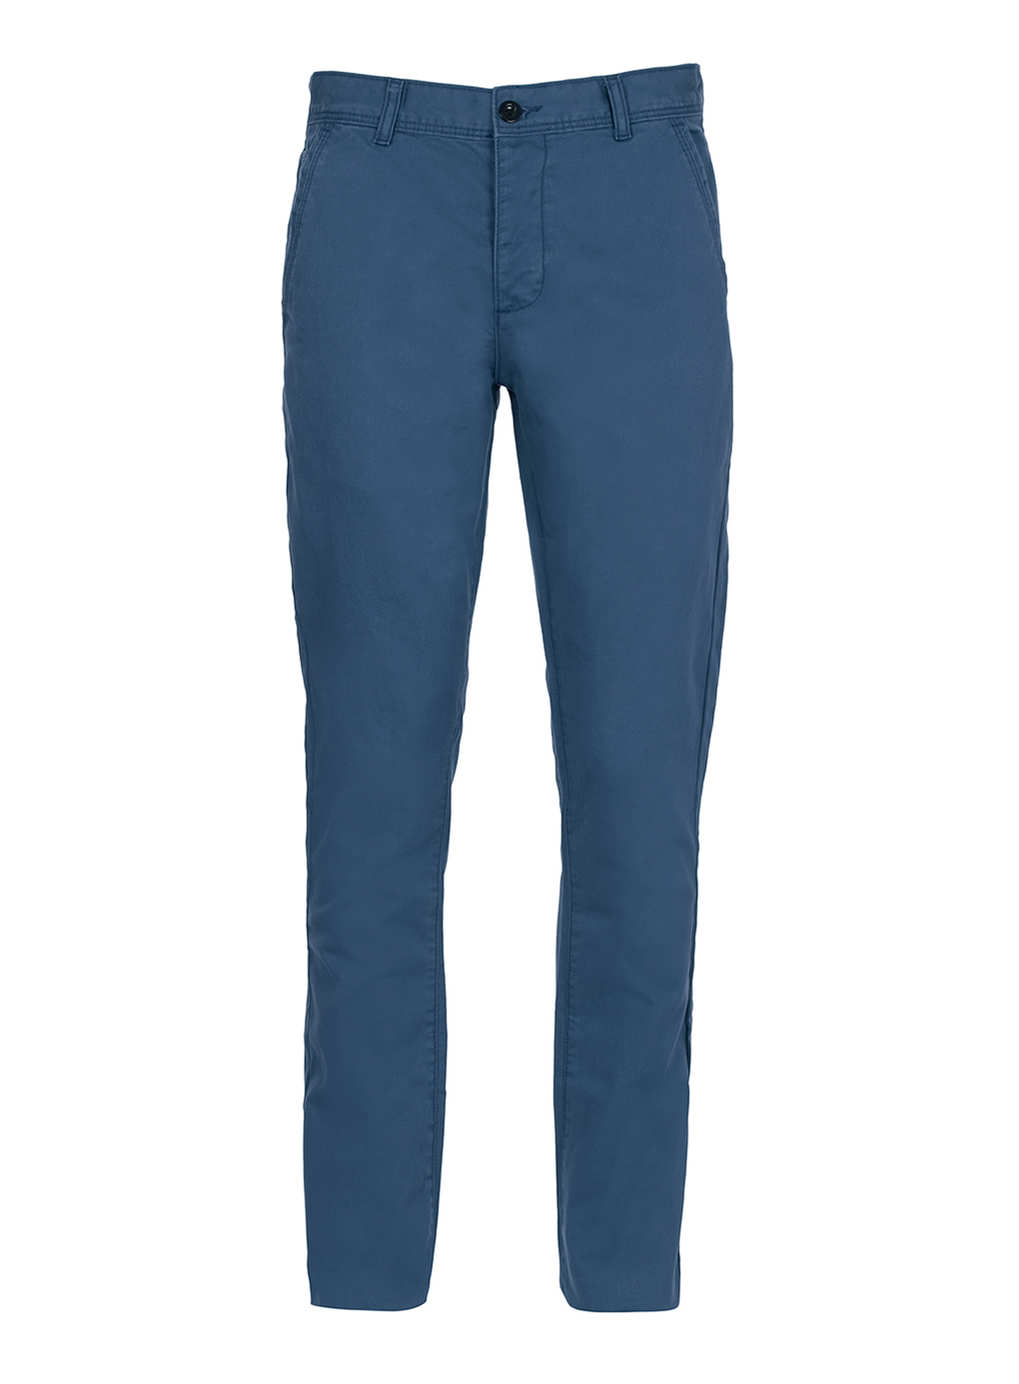 Dark Blue Vintage Slim Chinos - Men's Chinos - Clothing